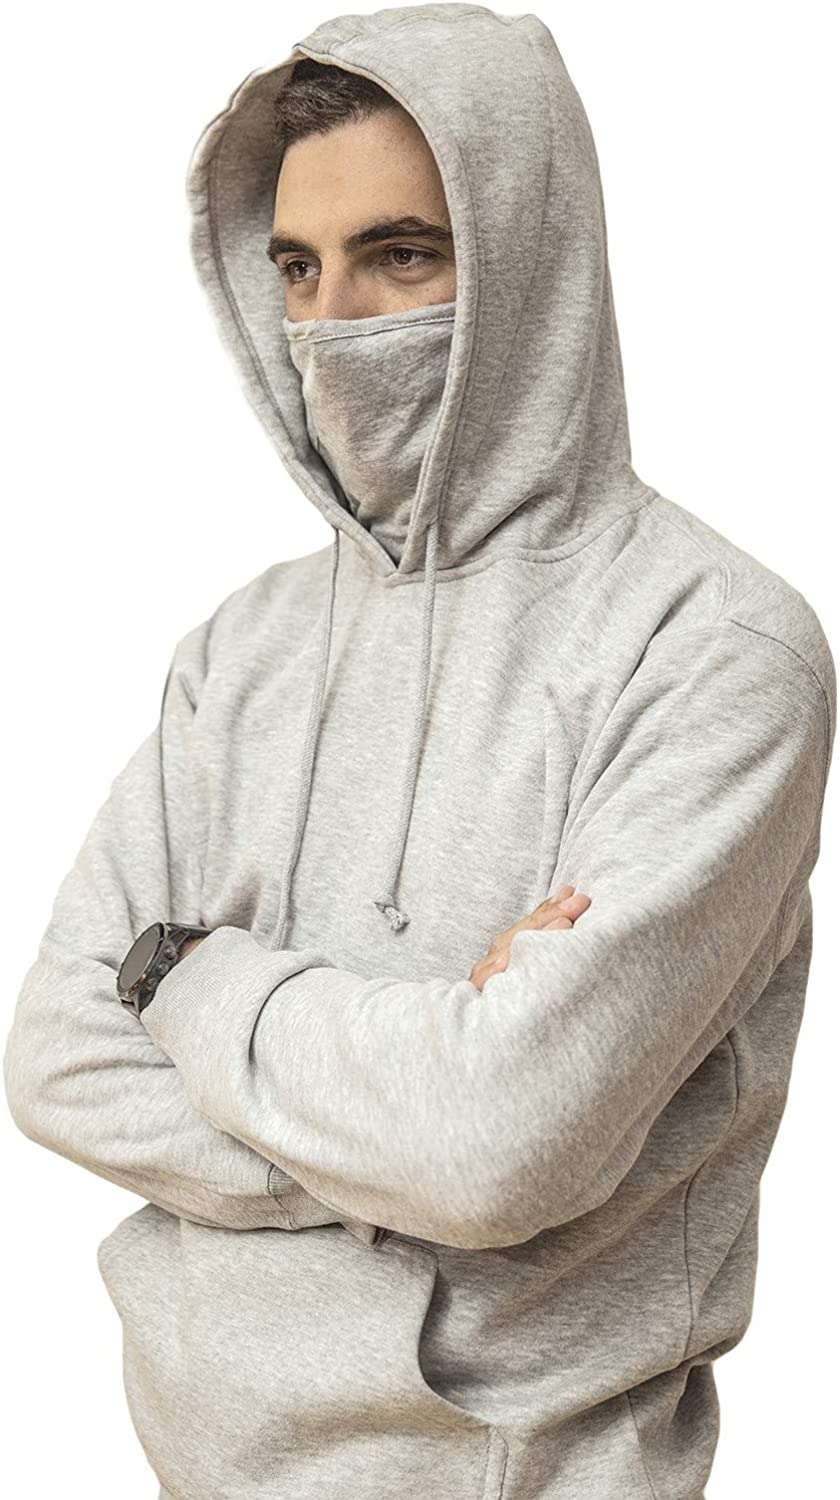 Clymate(TM) Men's Mid-weight Pullover Hooded Sweatshirt with 2 Detachable & Reusable Masks